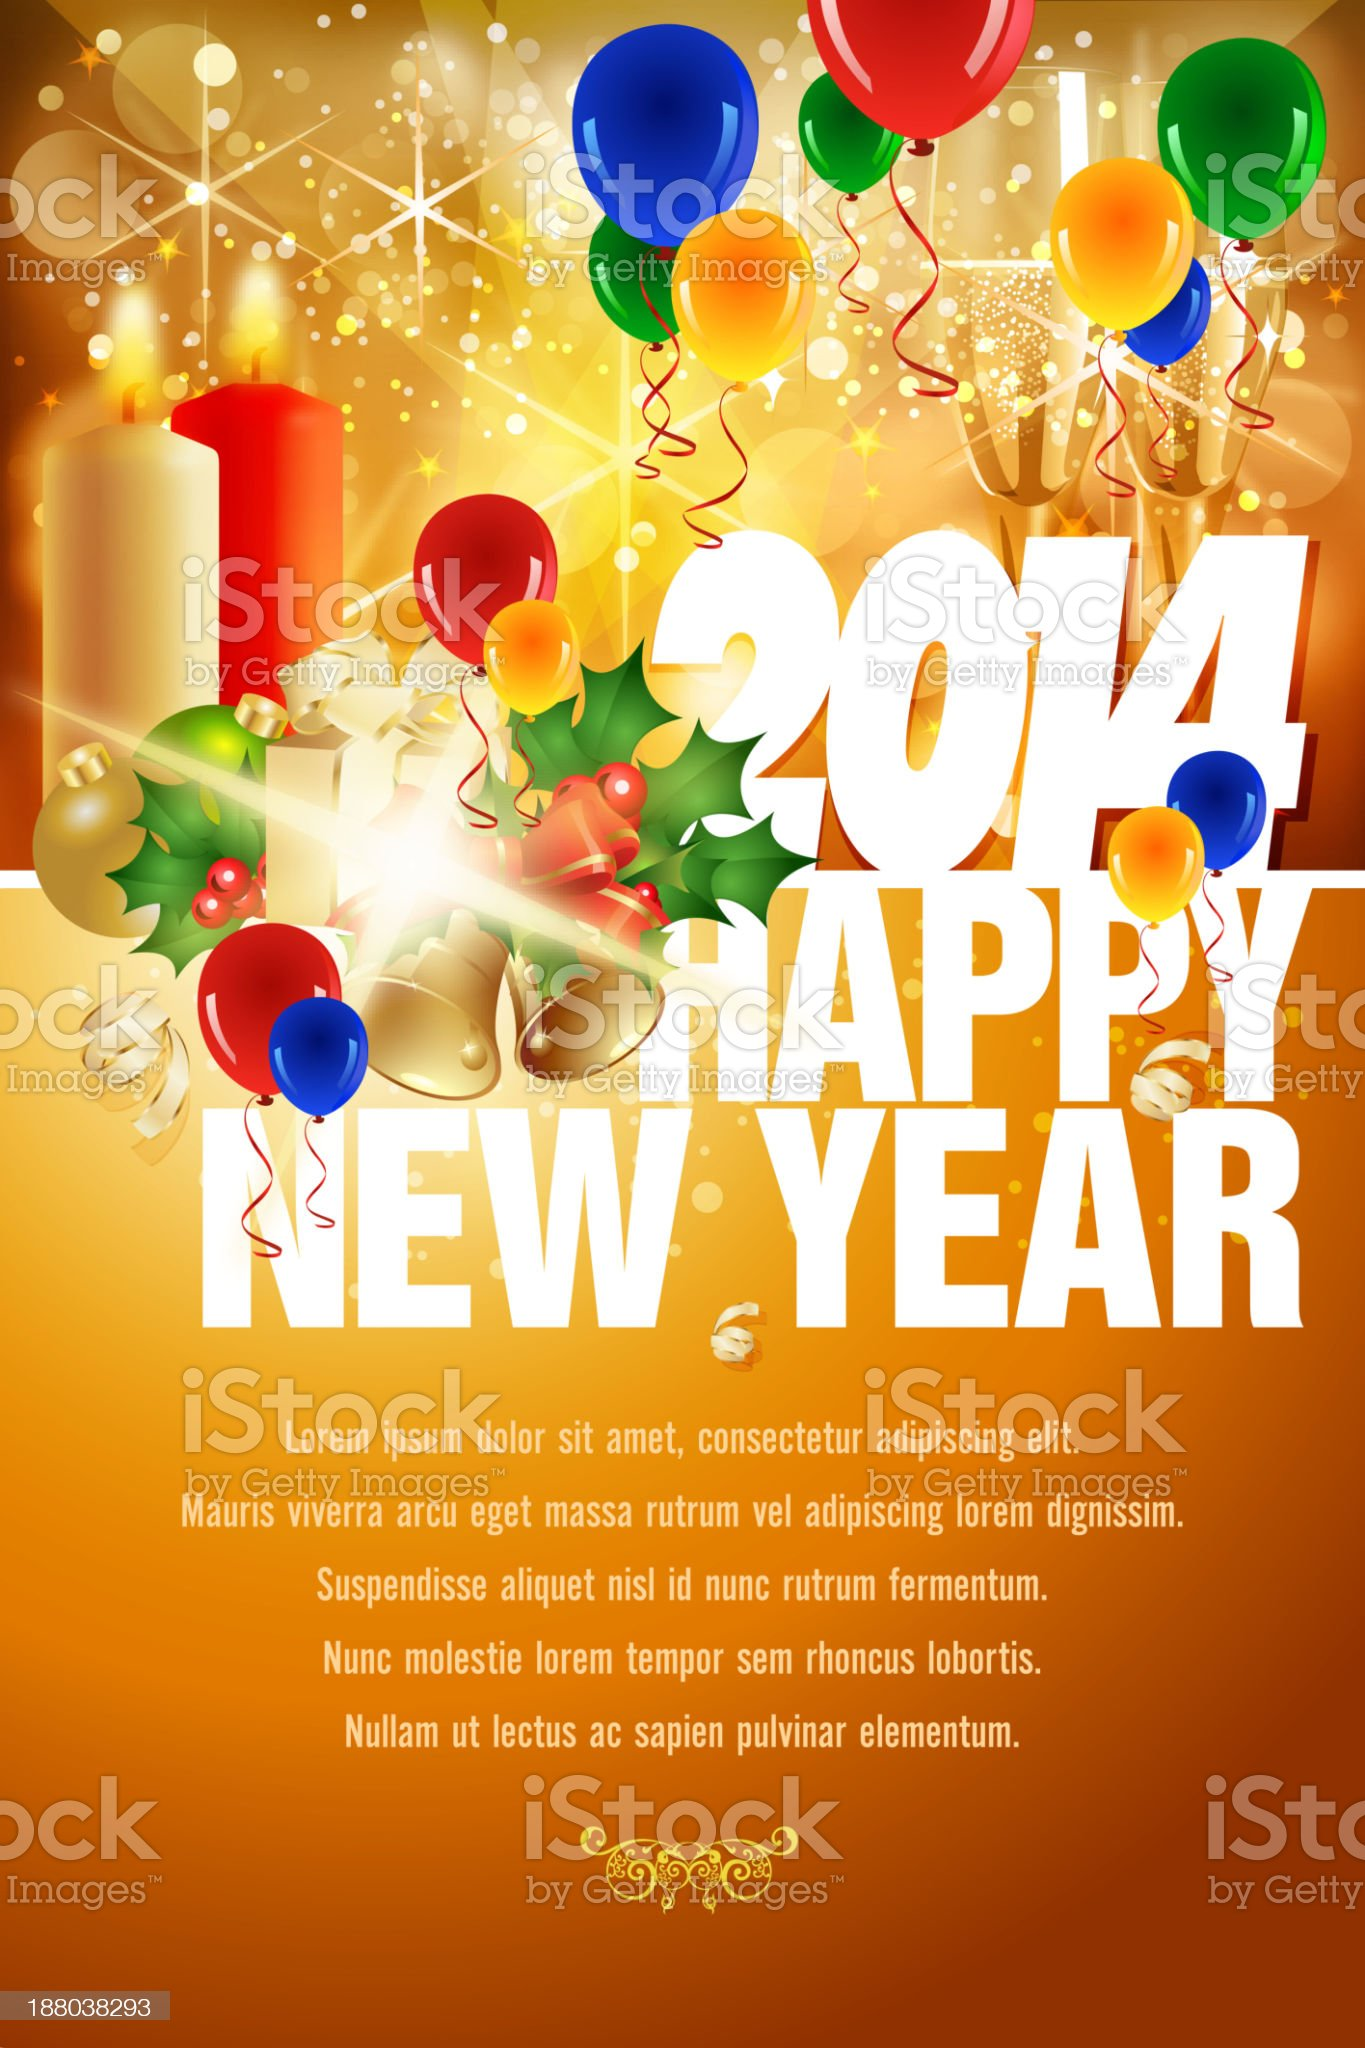 New Year Celebration Background royalty-free stock vector art